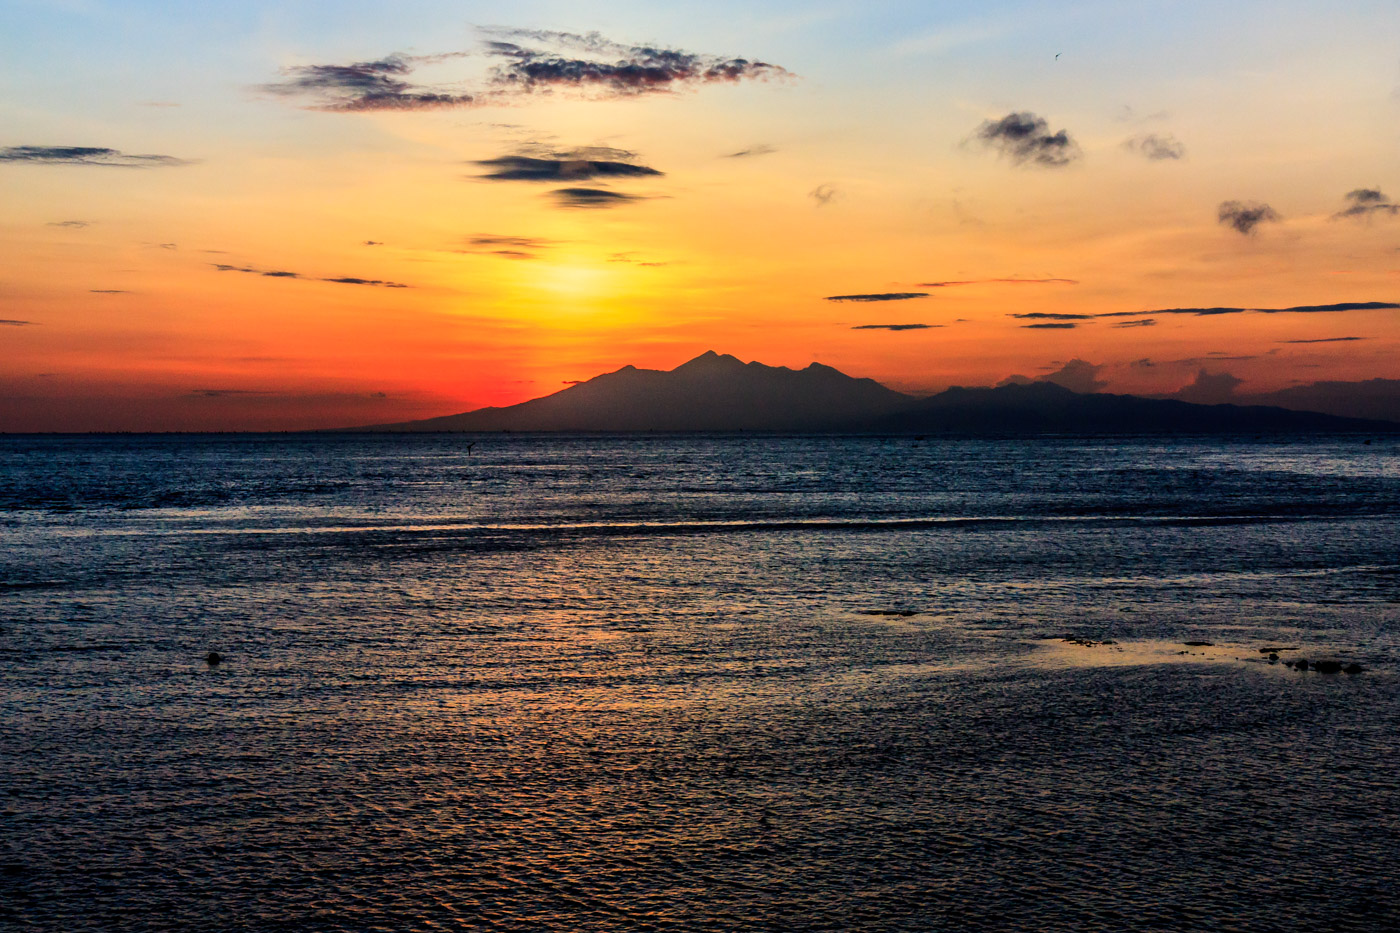 But the sun was rising on new adventures in Lombok and beyond.